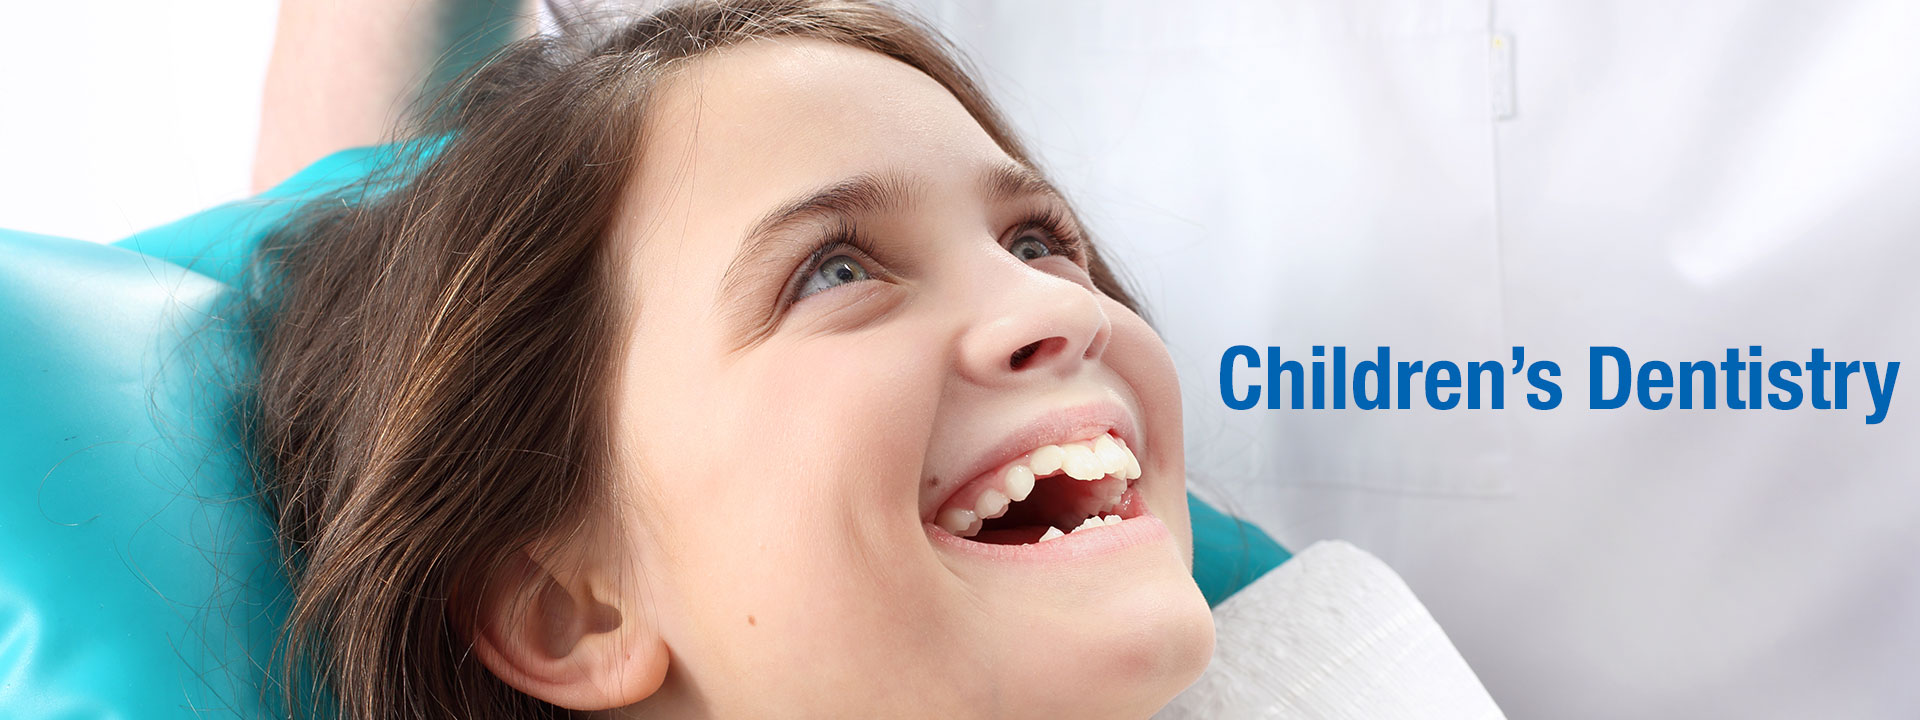 children's dentistry - child sitting on a dentist chair and smiling